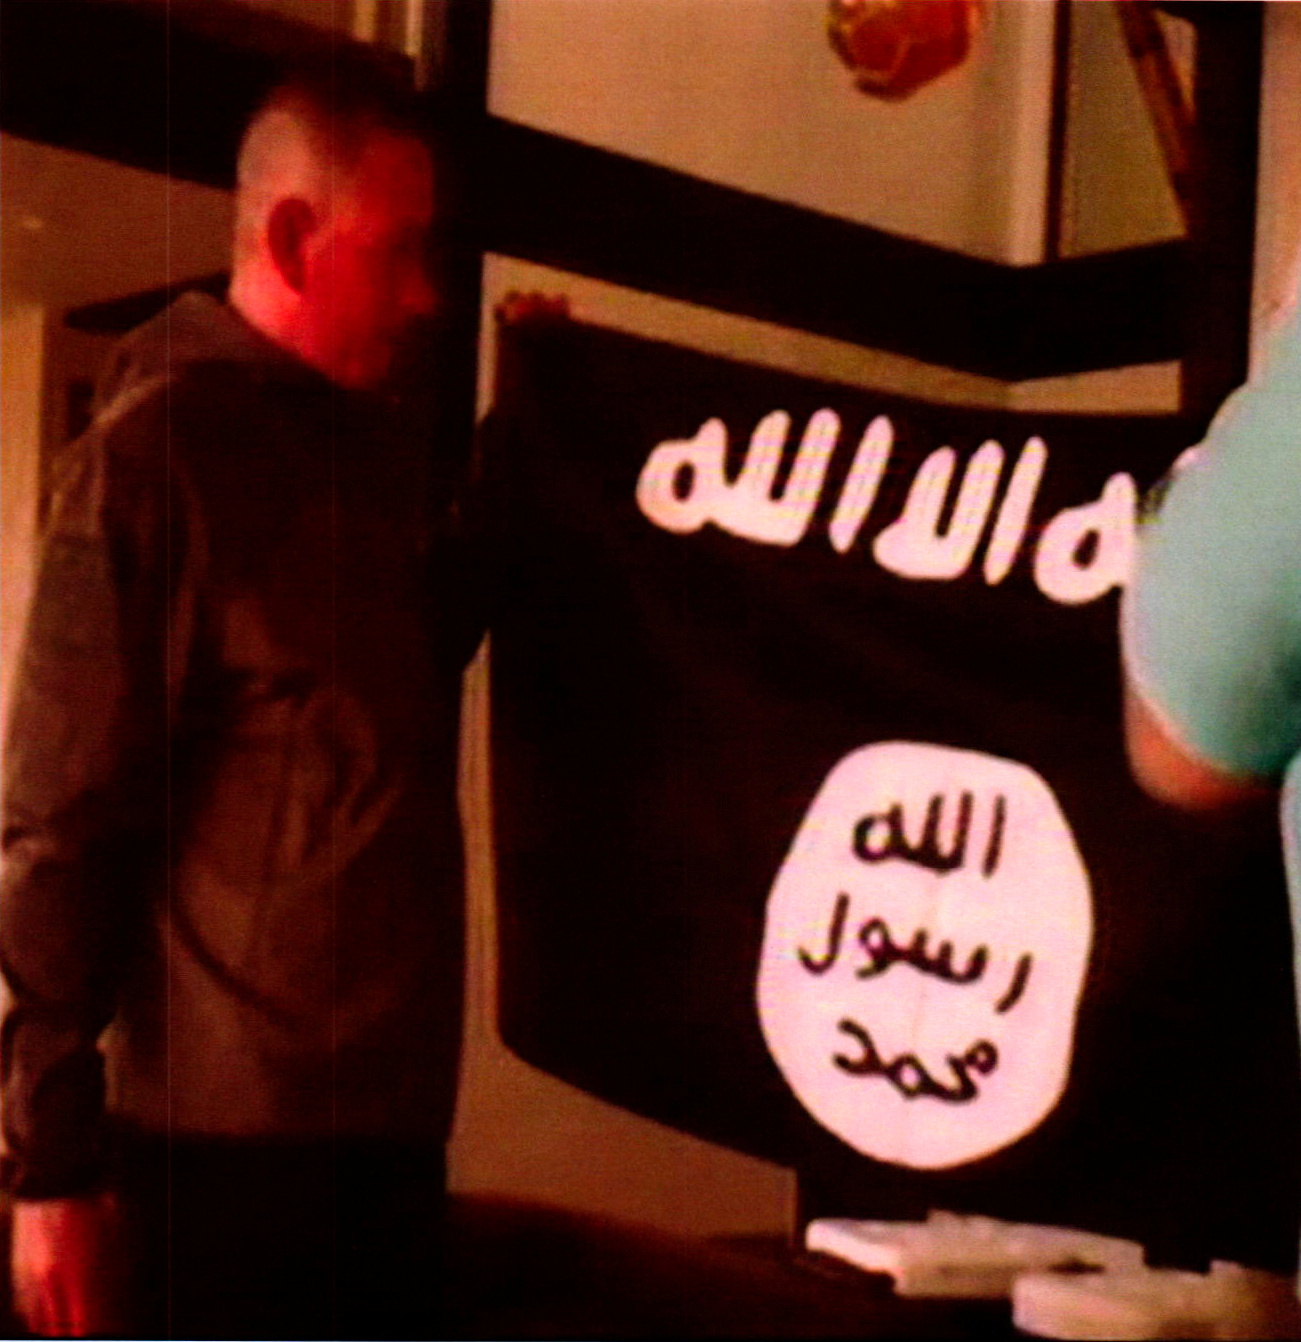 FILE PHOTO: A photograph with a redacted date, and entered into federal court as an exhibit to support the government's motion to keep U.S. Army Sergeant Ikaika Erik Kang in detention without bond, shows what is described as Kang holding the Islamic State Flag after pledging allegiance to the Islamic State. Kang is charged with trying to provide material support to Islamic State extremists. U.S. District Court for the District of Hawaii/Handout via REUTERS